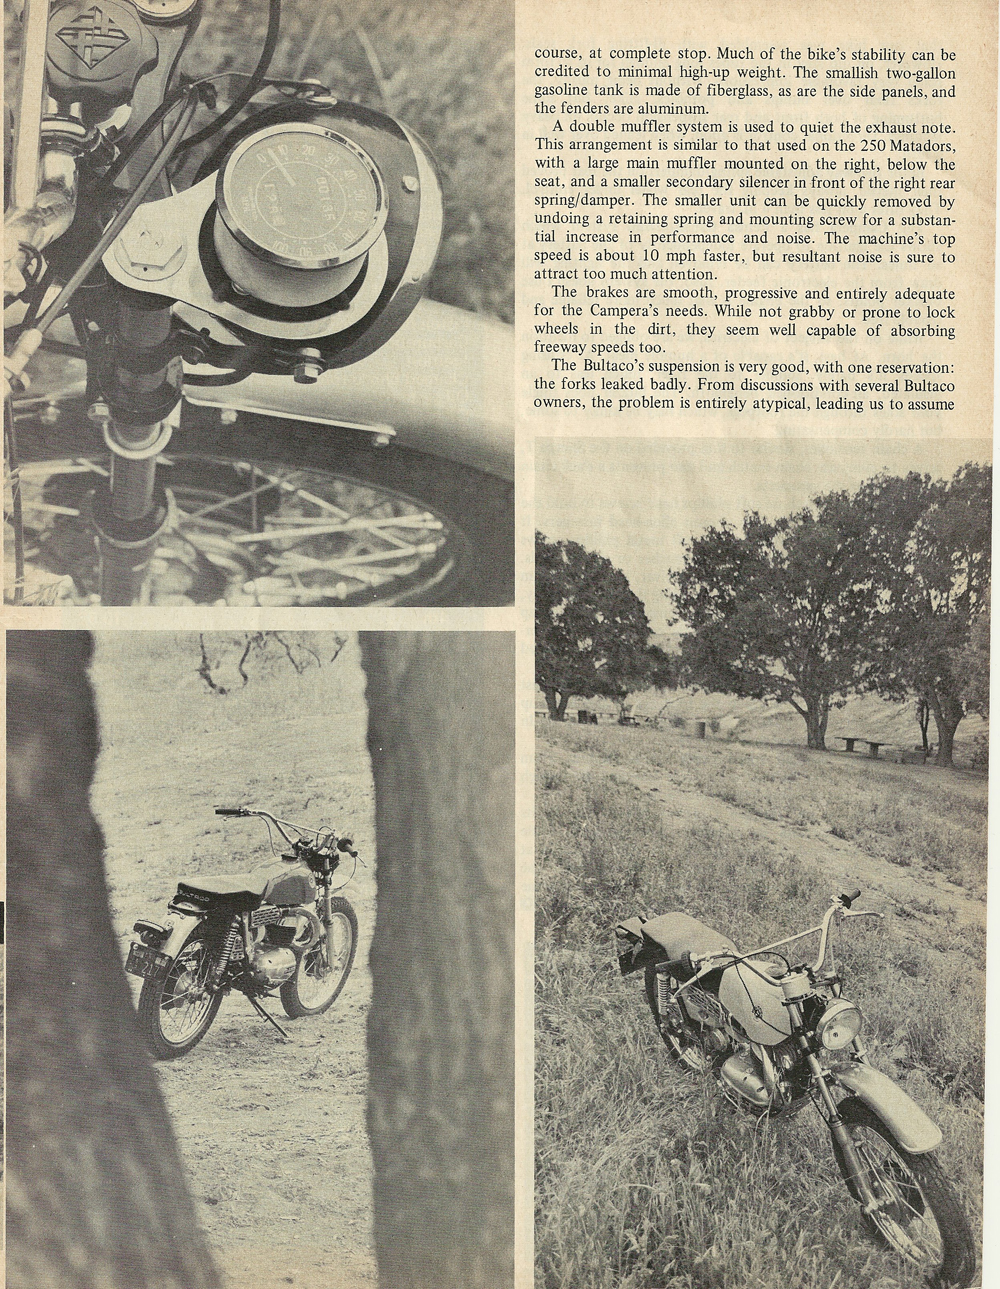 1969 Bultaco Campera MK 2 road test 2.jpg